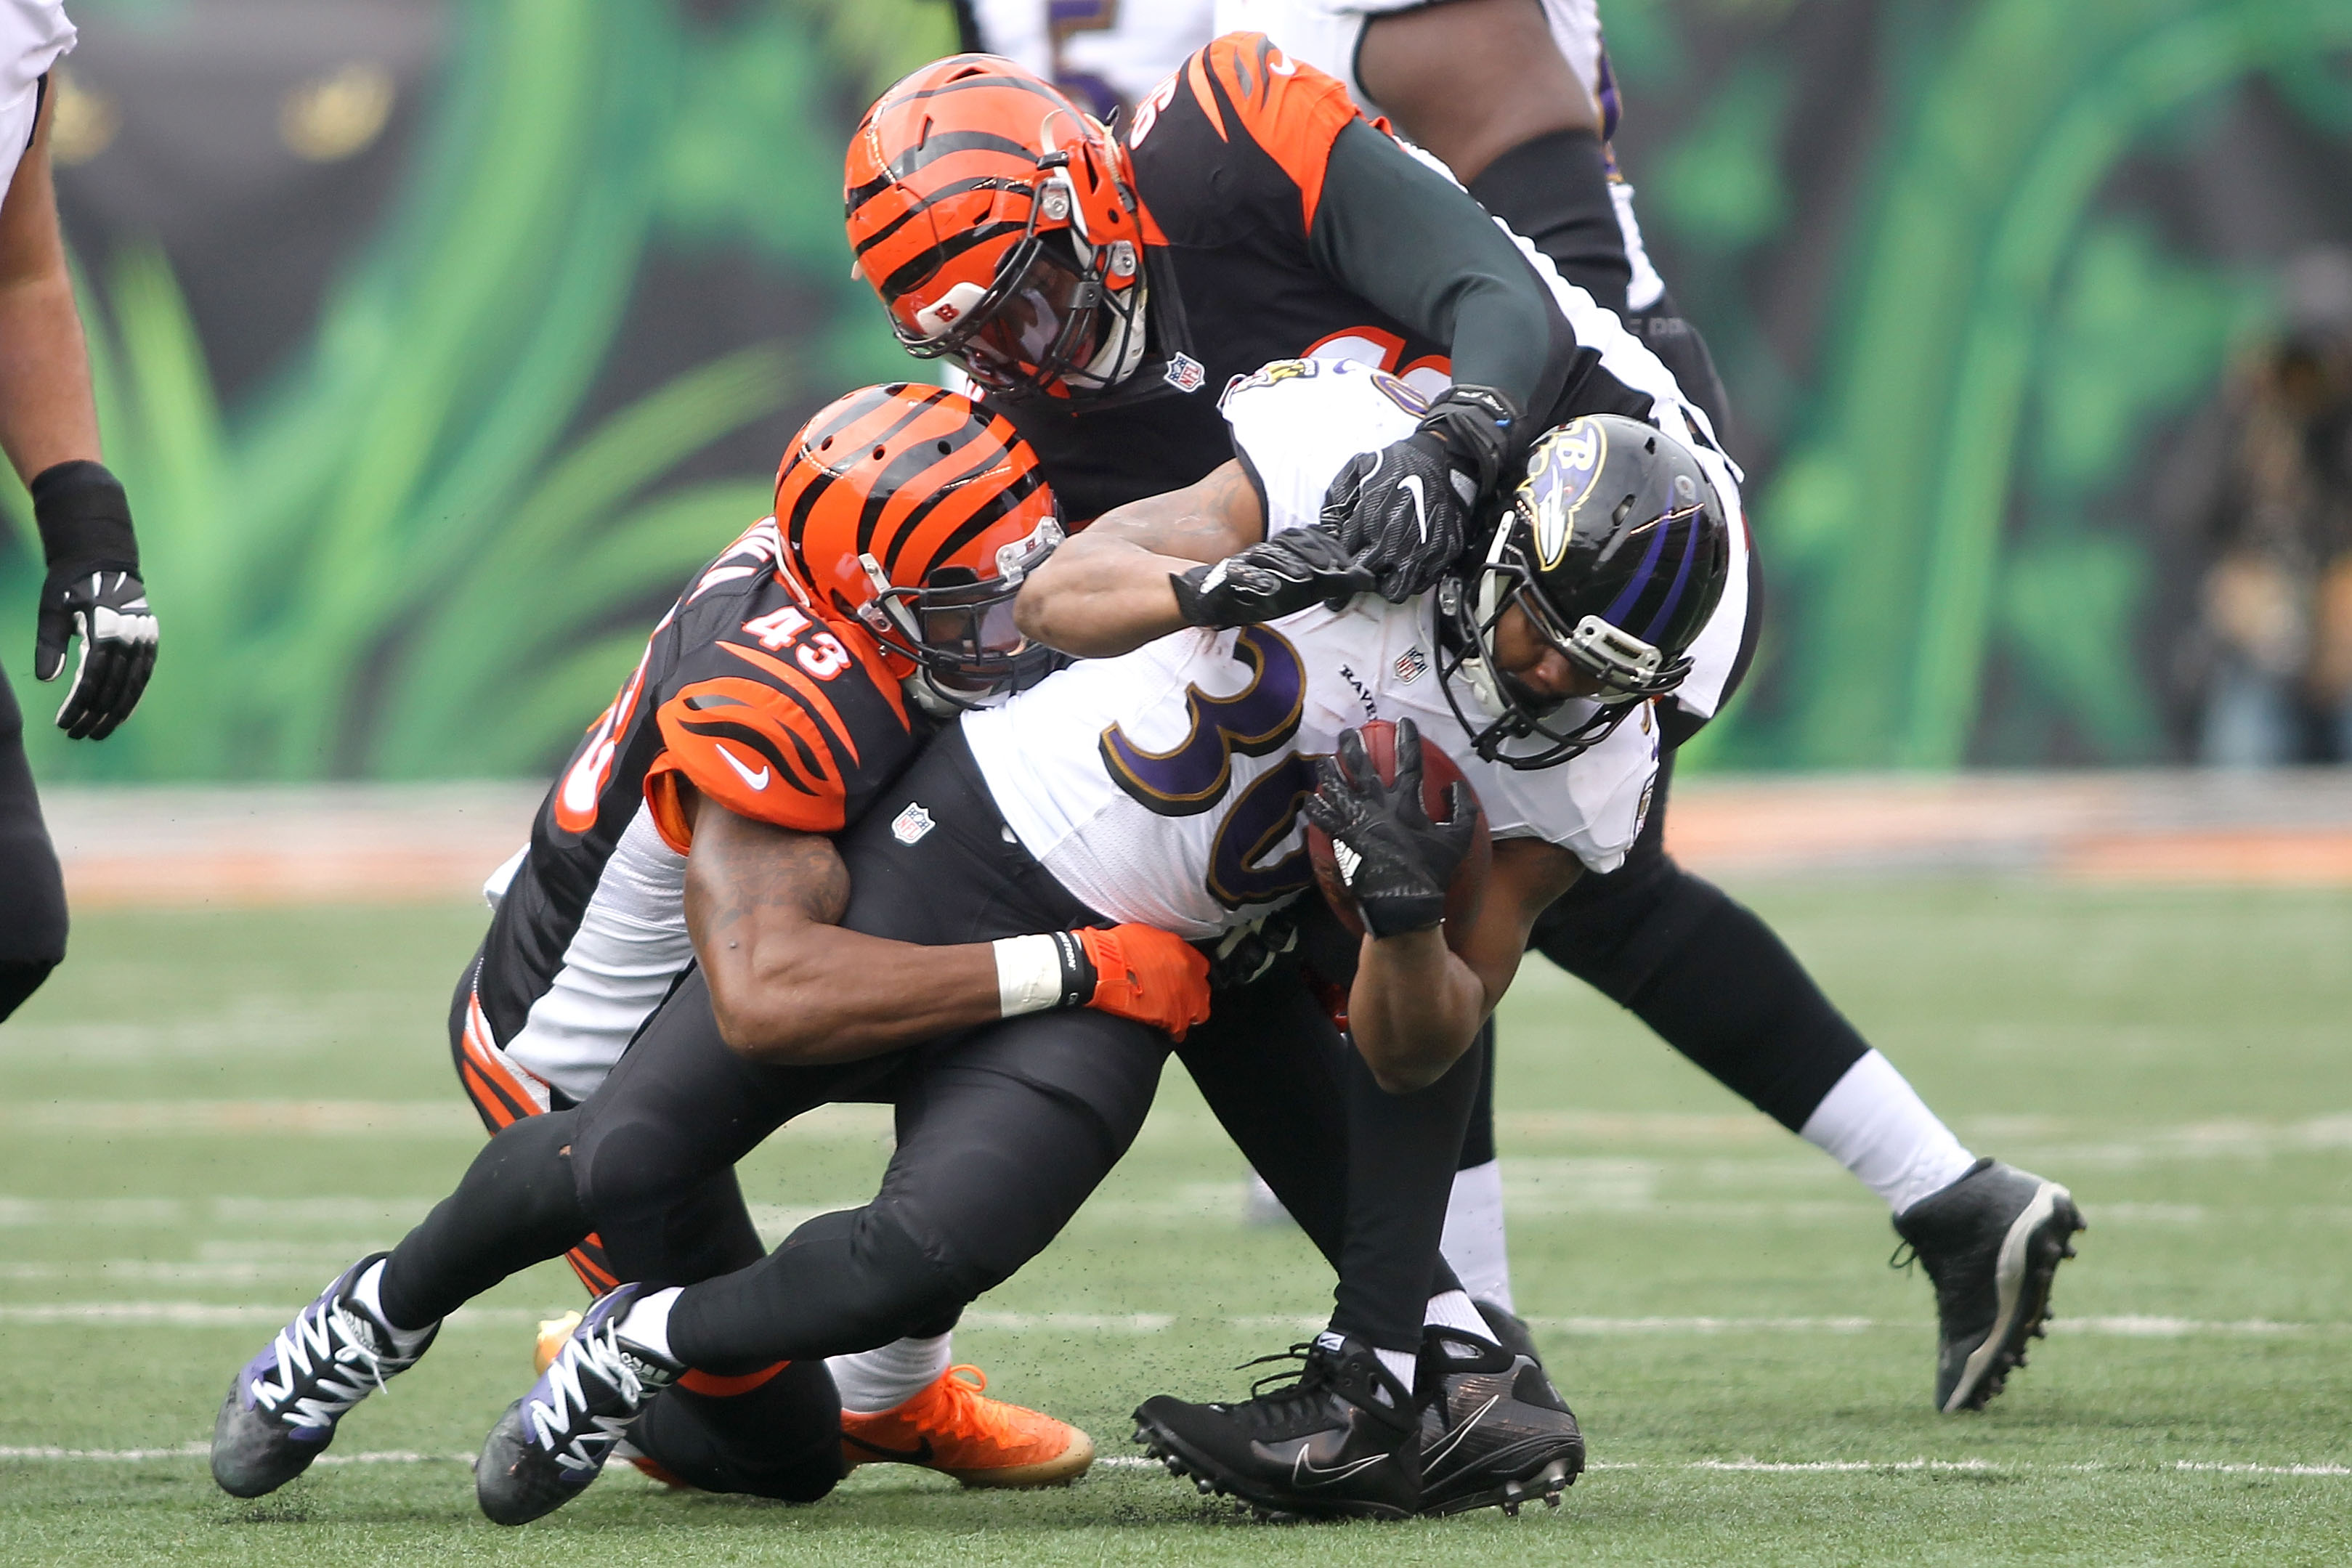 Baltimore Ravens RB Kenneth Dixon to miss season with meniscus injury